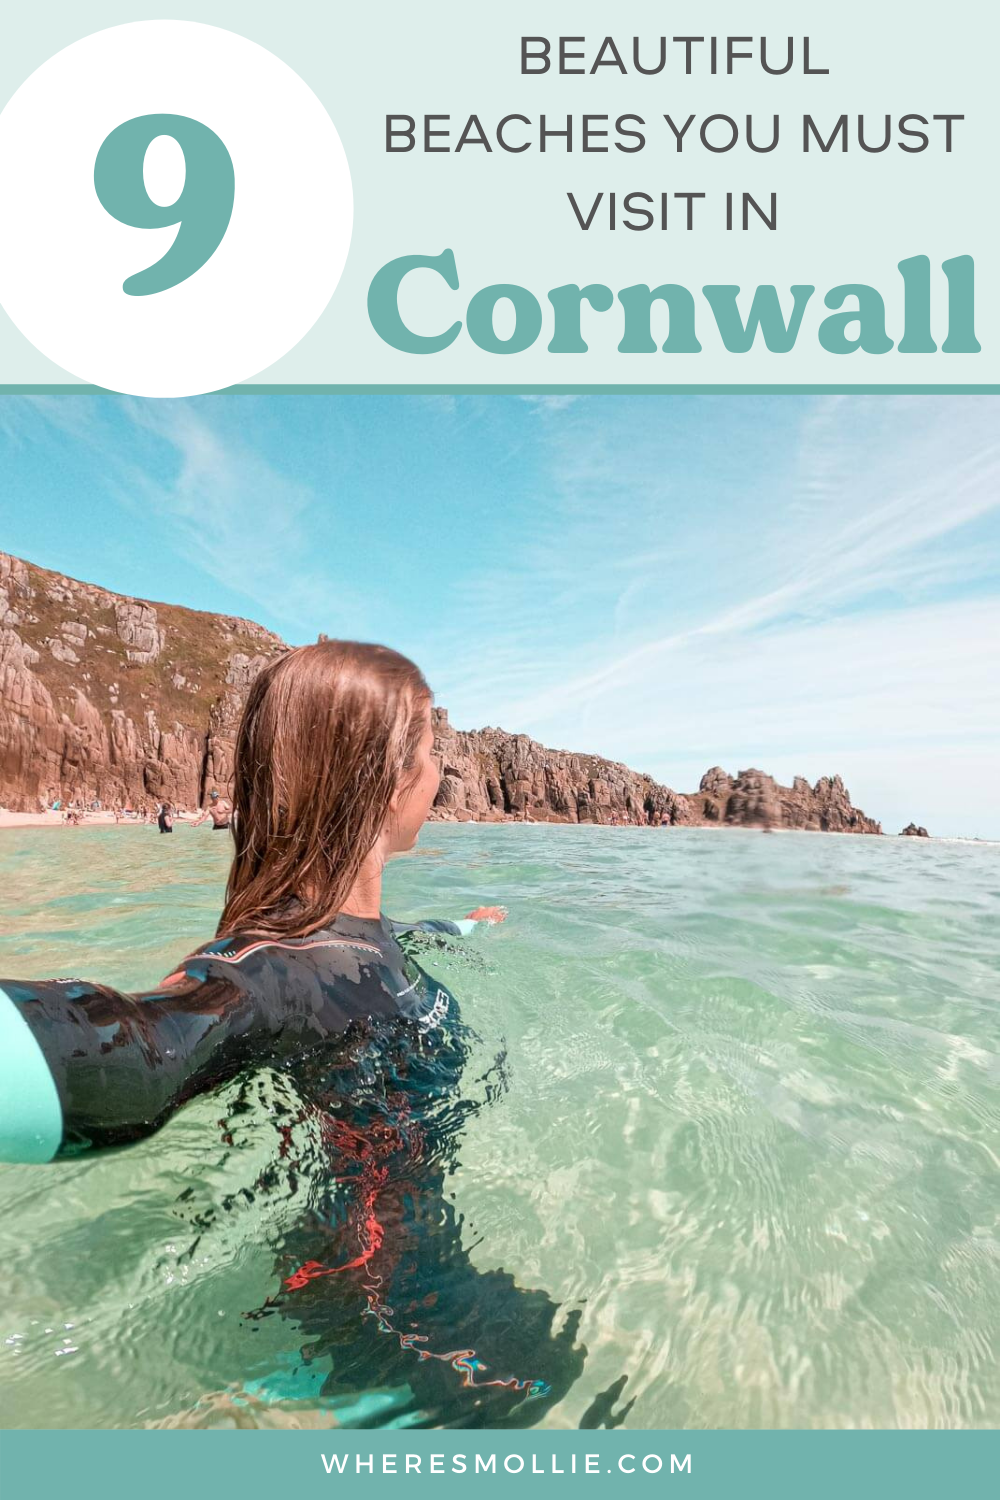 The best and most beautiful beaches to visit in Cornwall